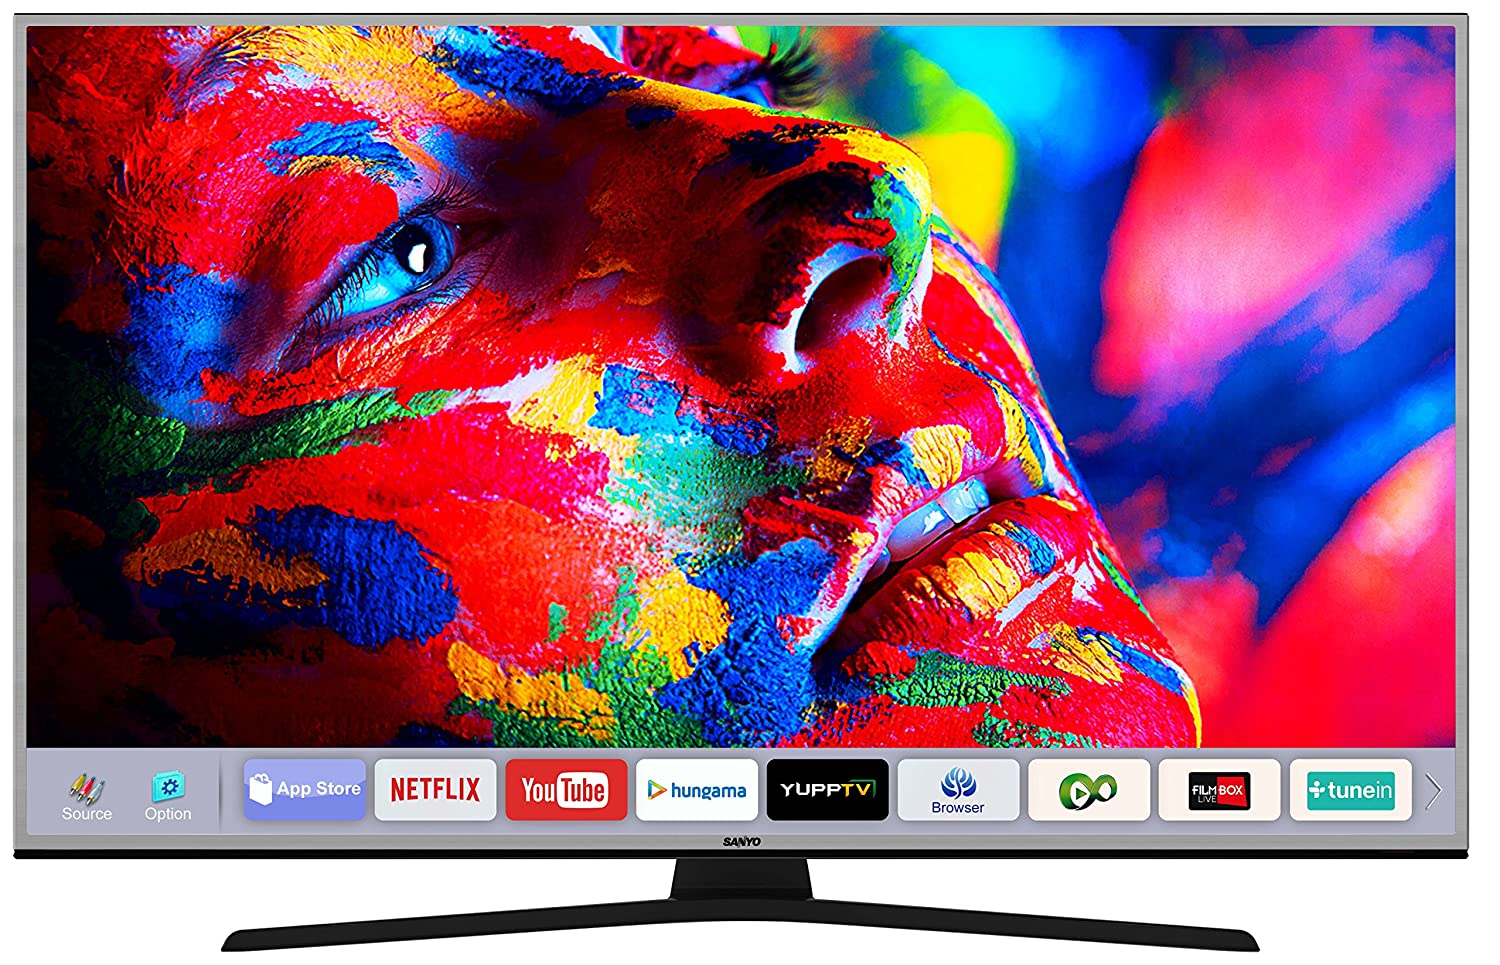 Best 50 inch 4k TVs in India under 50,000 - Sanyo XT-49S8200U 4K UHD LED Smart TV